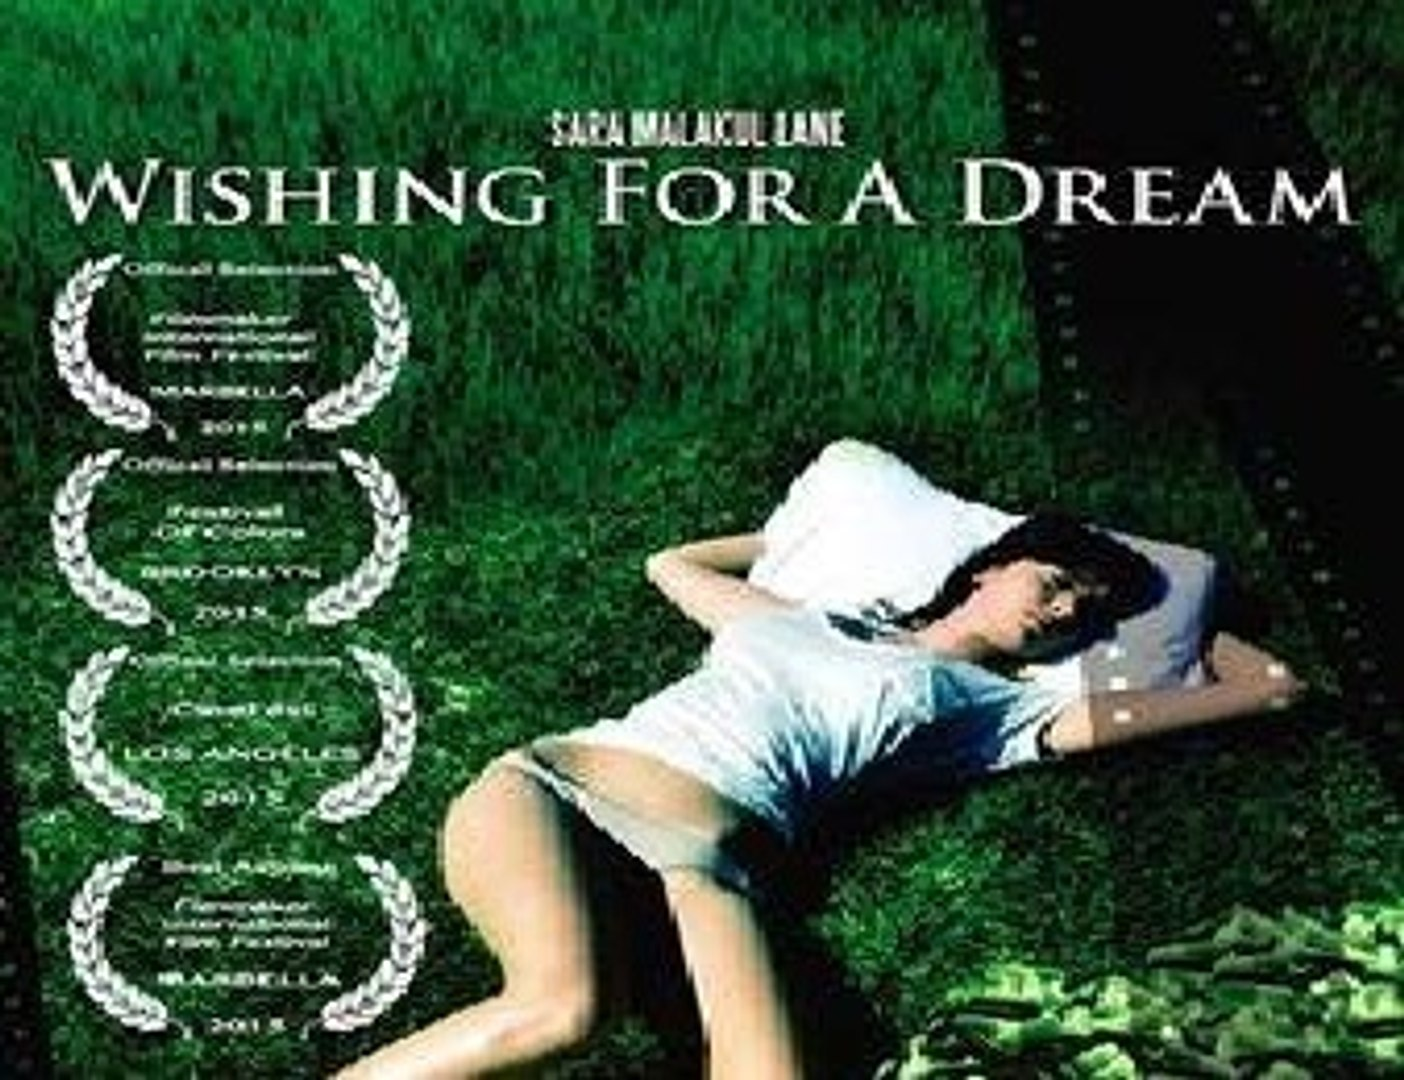 wishing for a dream 2016 free download